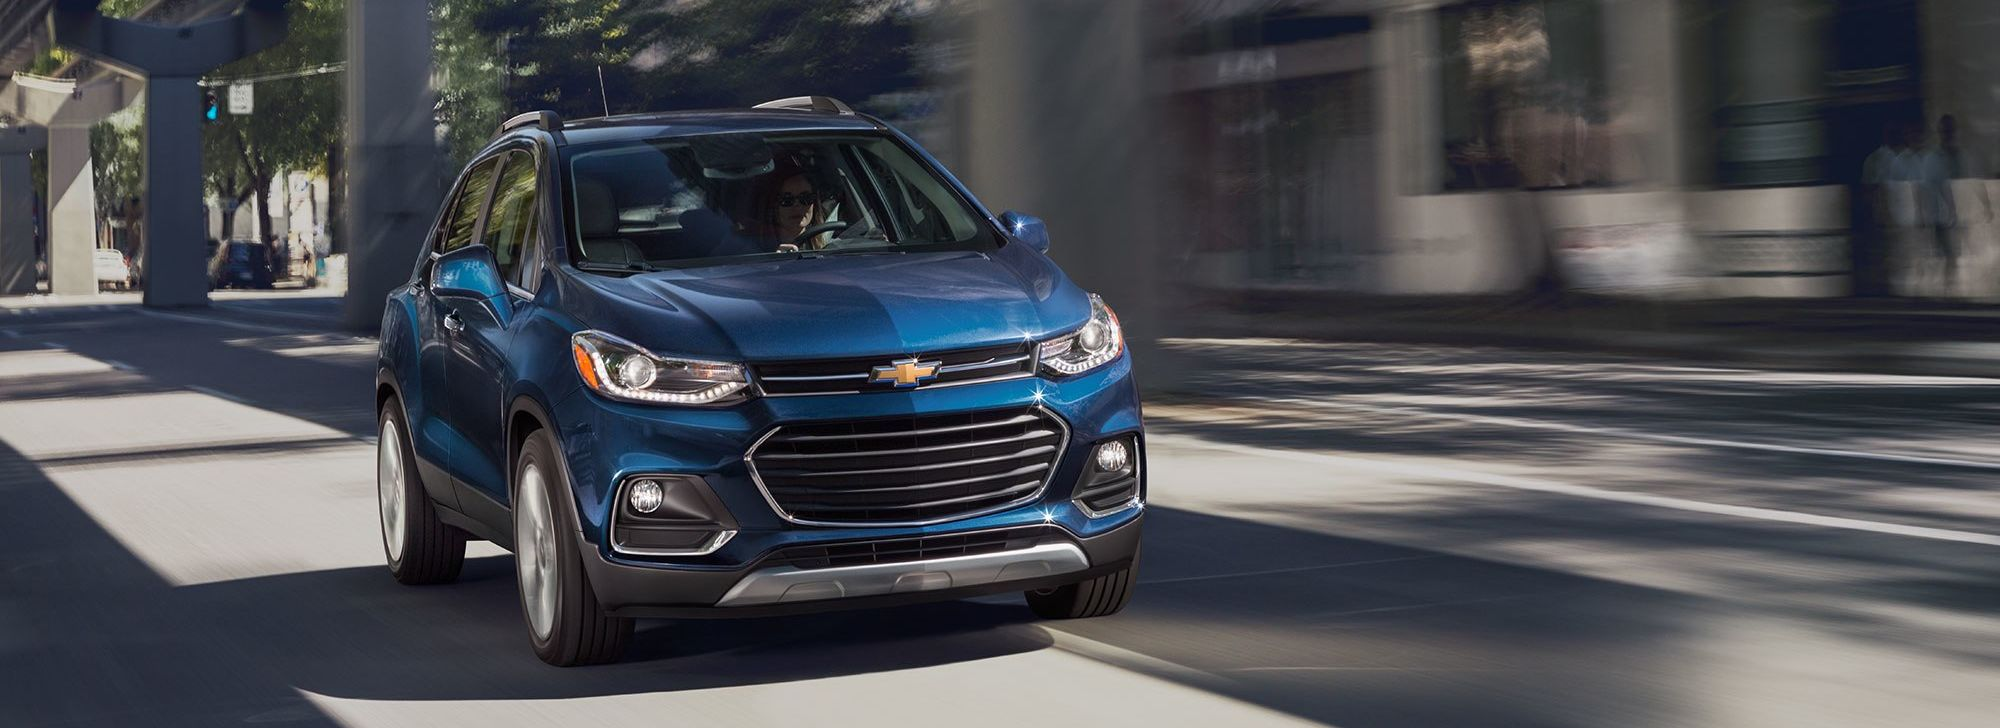 2019 Chevrolet Trax Leasing near Merrillville, IN